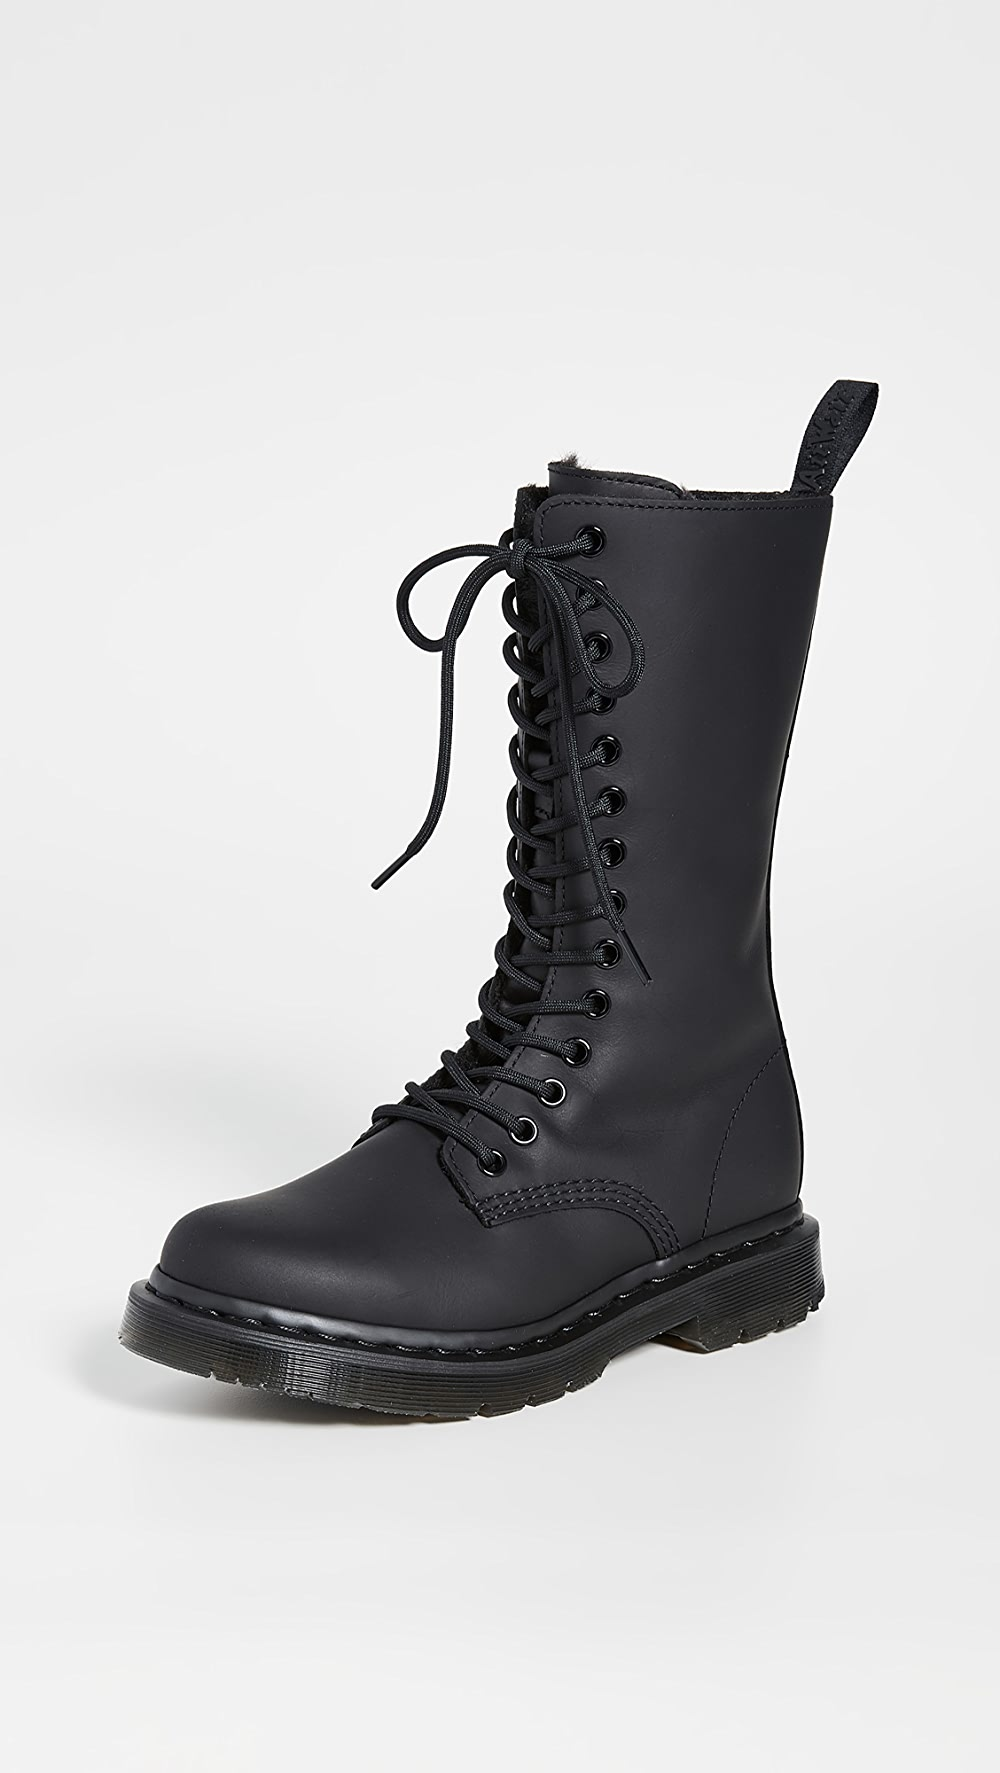 Constructive Dr. Martens - 1914 Kolbert Tall 14 Eye Boots To Reduce Body Weight And Prolong Life